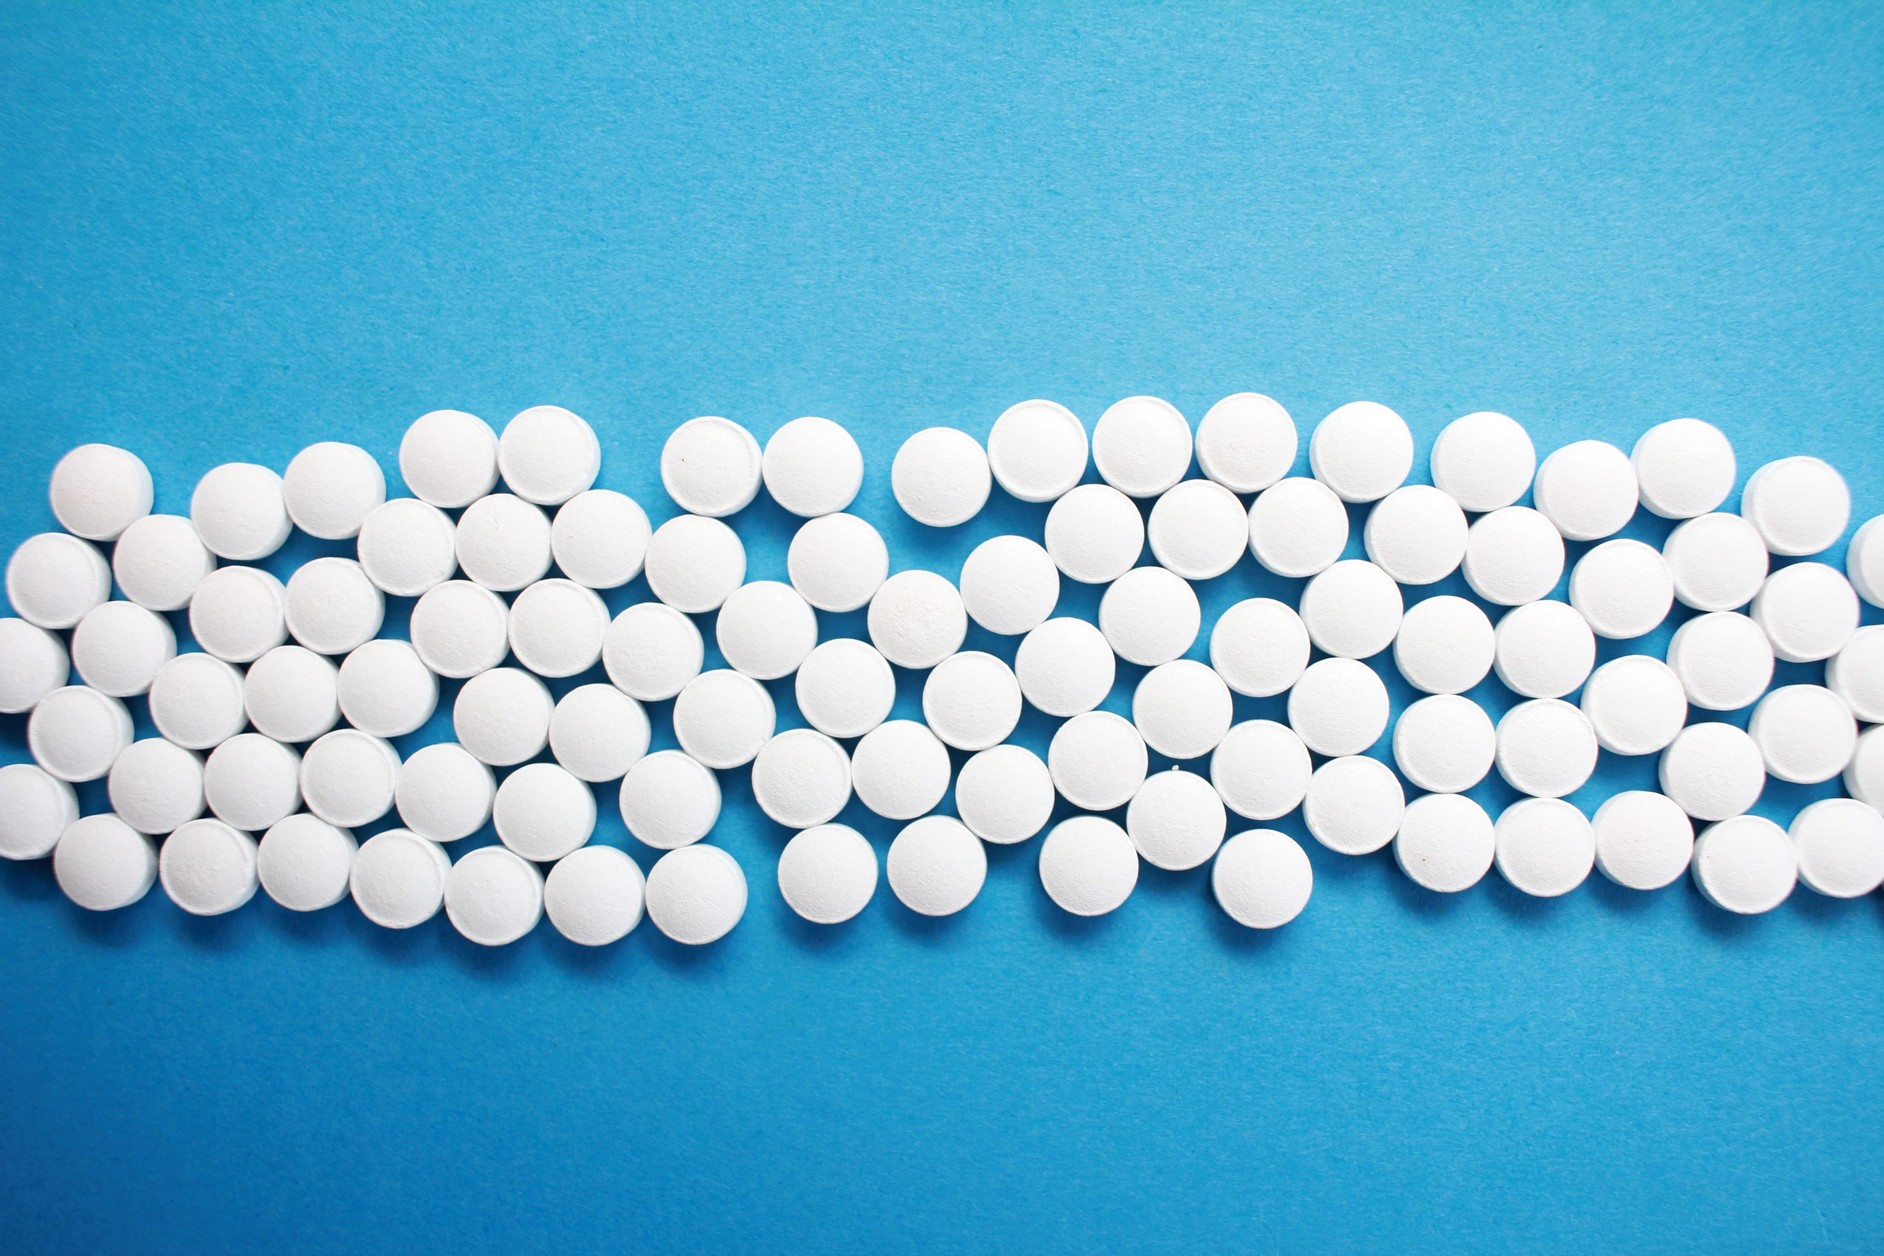 array of white vitamin pills on a blue background.